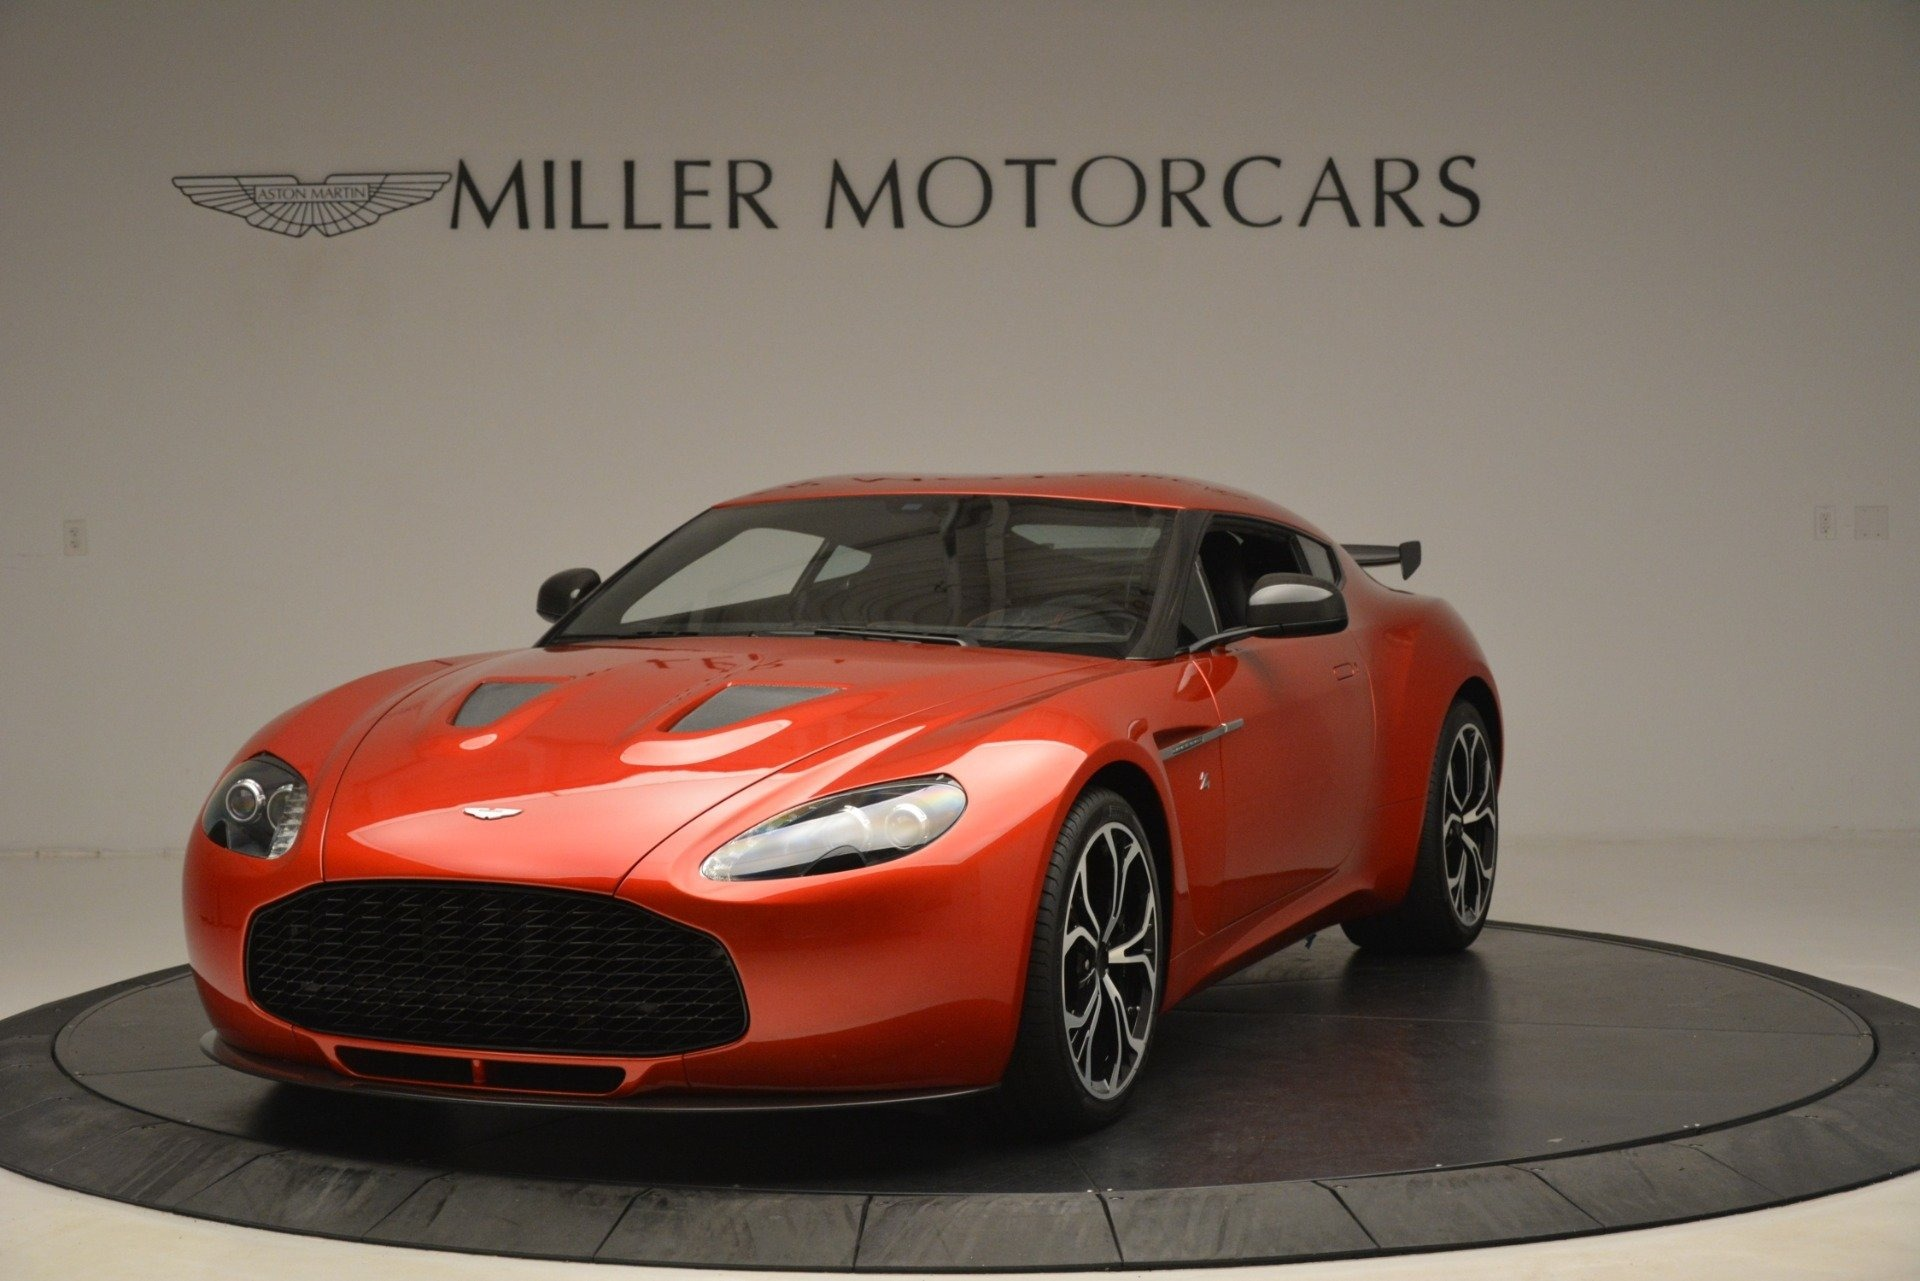 Used 2013 Aston Martin V12 Zagato Coupe for sale $655,900 at Maserati of Westport in Westport CT 06880 1